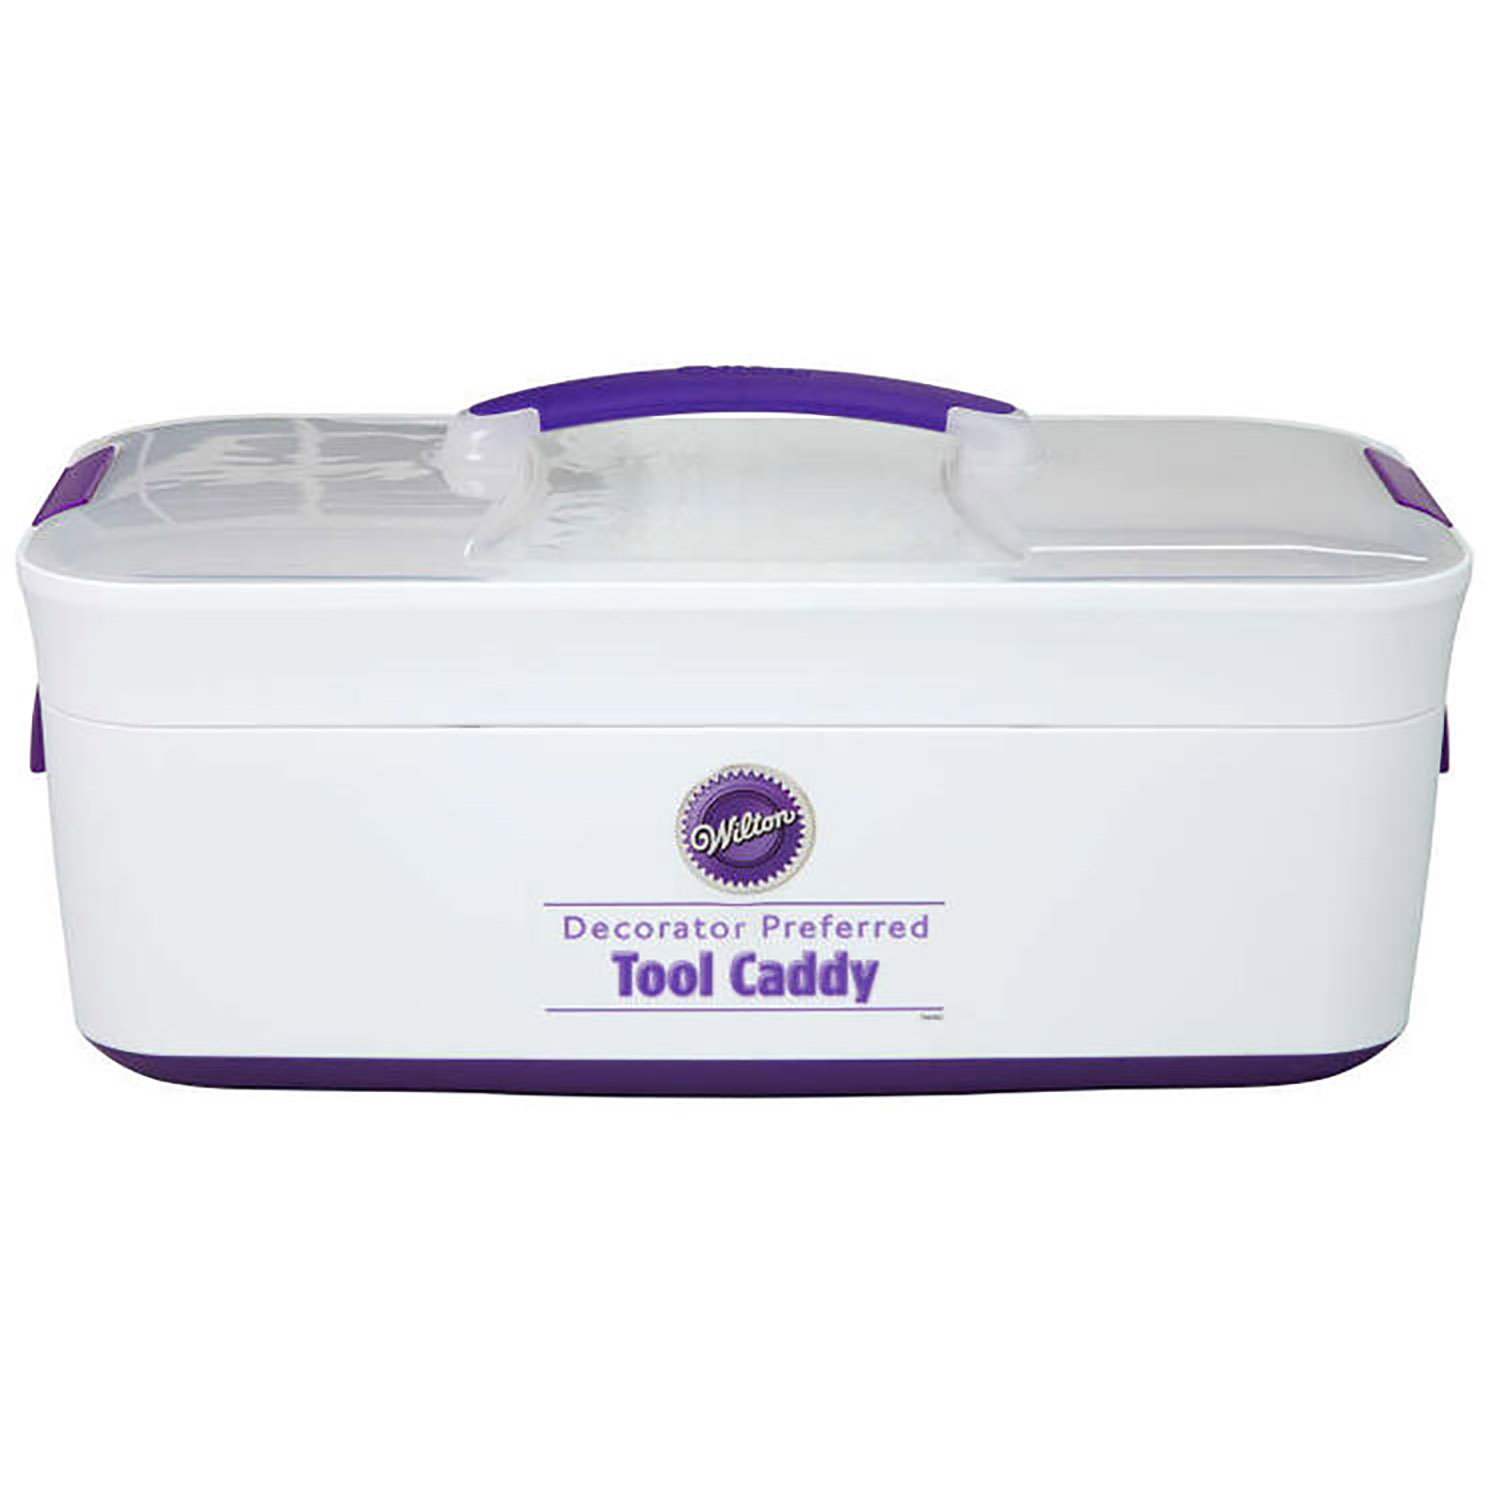 Decorator Preferred Tool Caddy